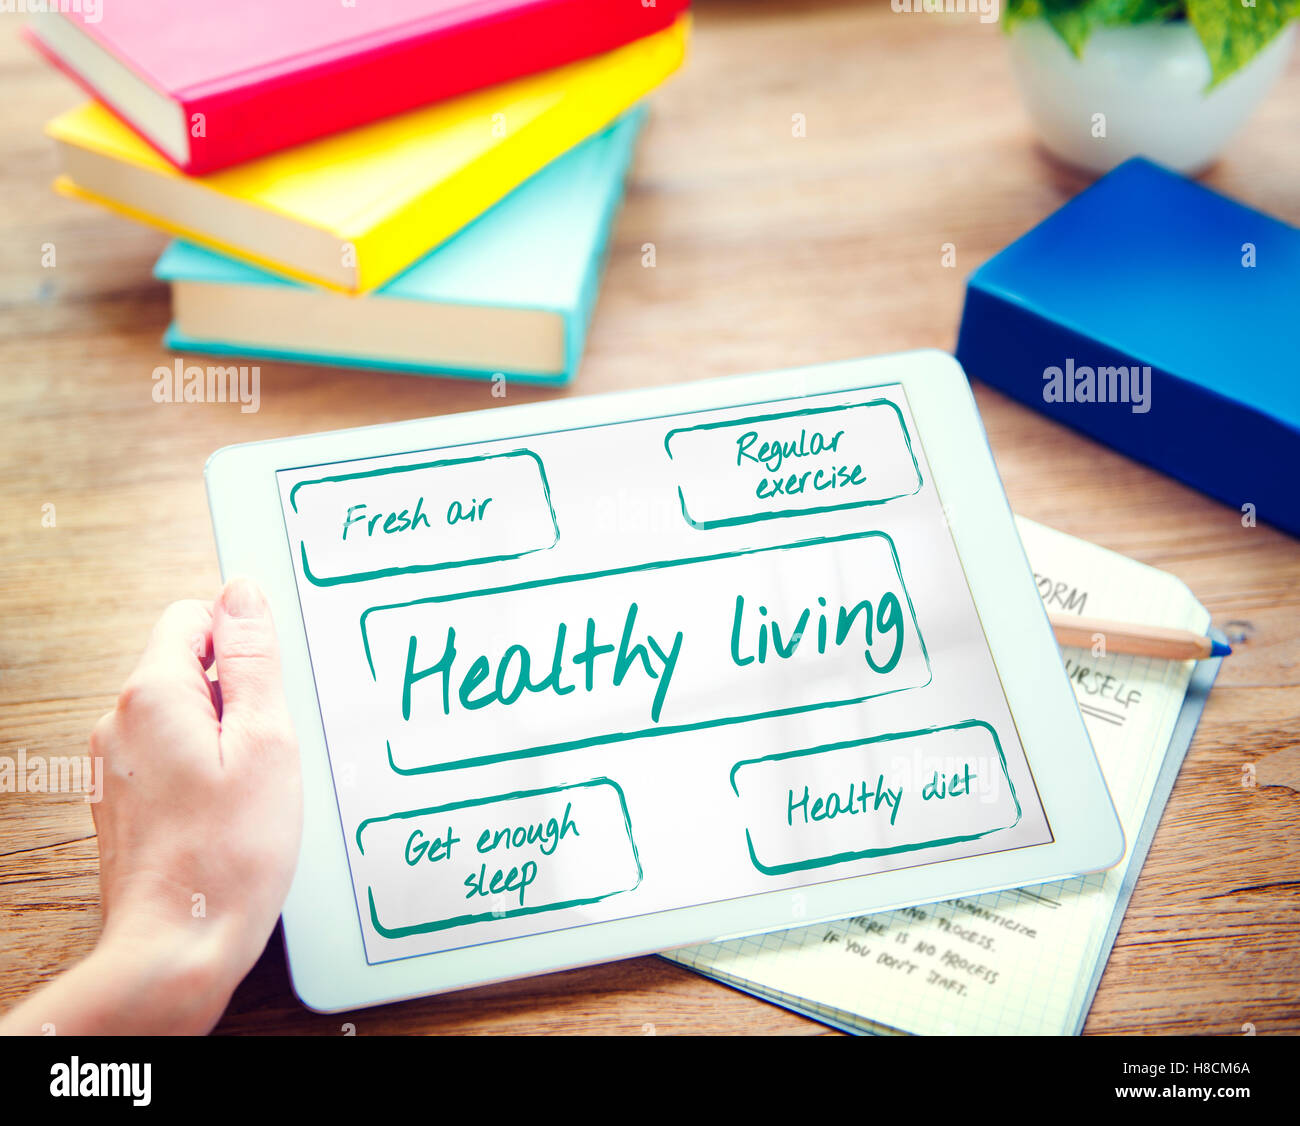 Healthy Living Wellness Diet Exercise Words Graphic Concept - Stock Image